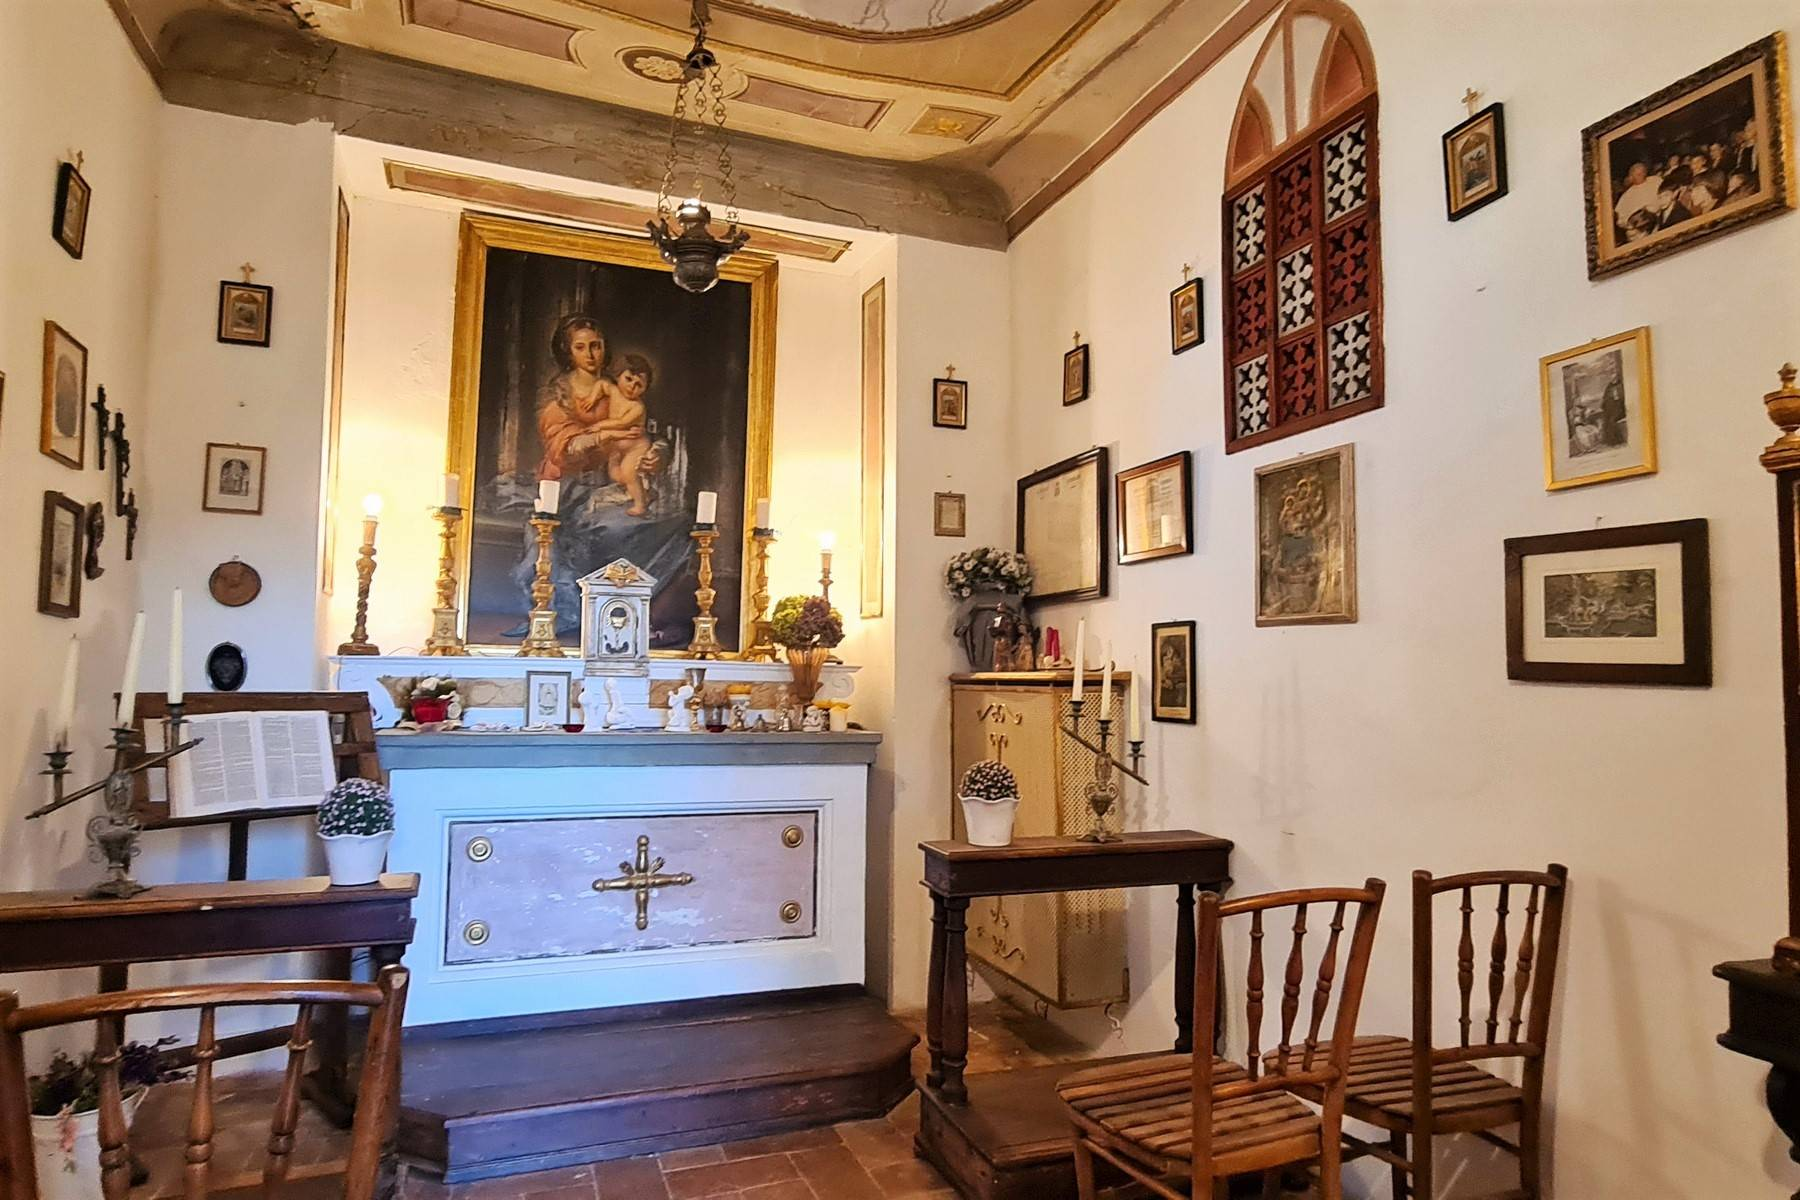 Enchanting historical villa in the heart of Chianti - 16